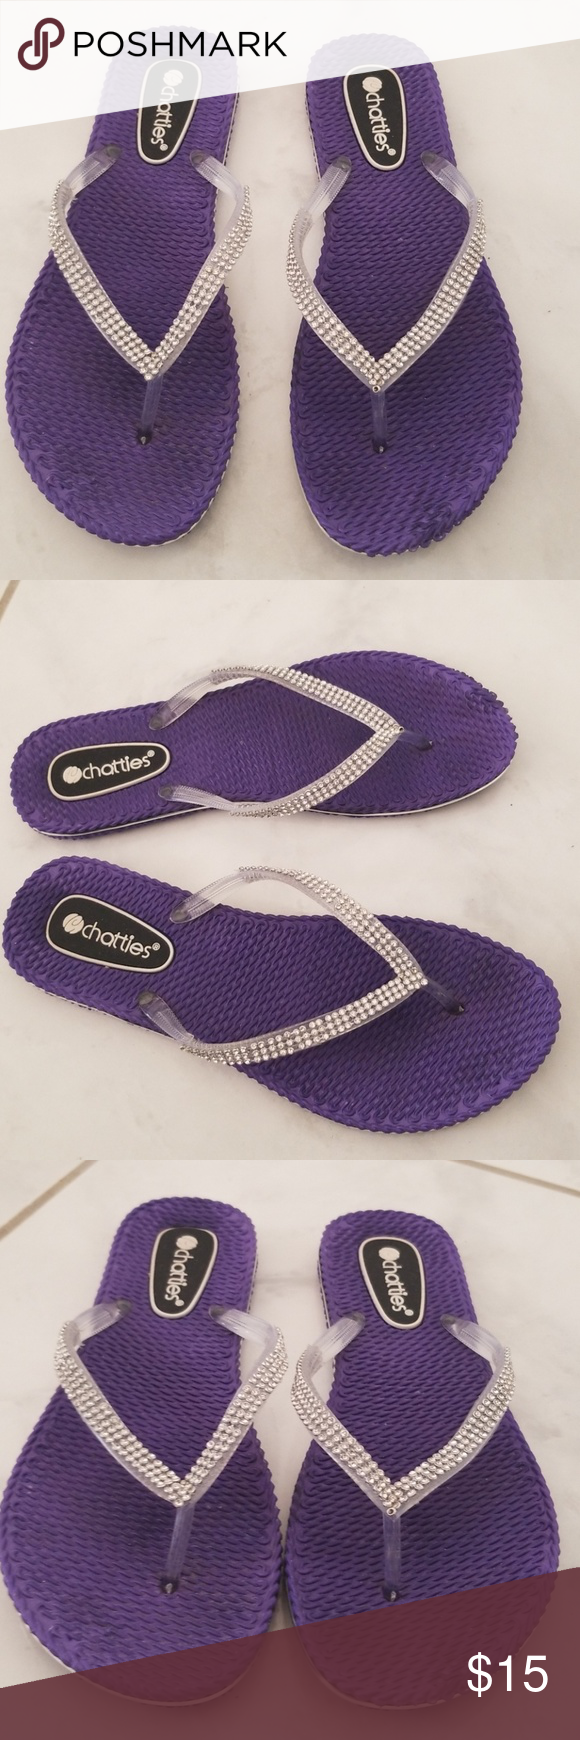 6a592e0a609243 Chatties Comfort Bling Flip Flops L 9 10 Adorable bling rhinestone flip  flops from Chatties in a size large 9 10. Measure 10.50